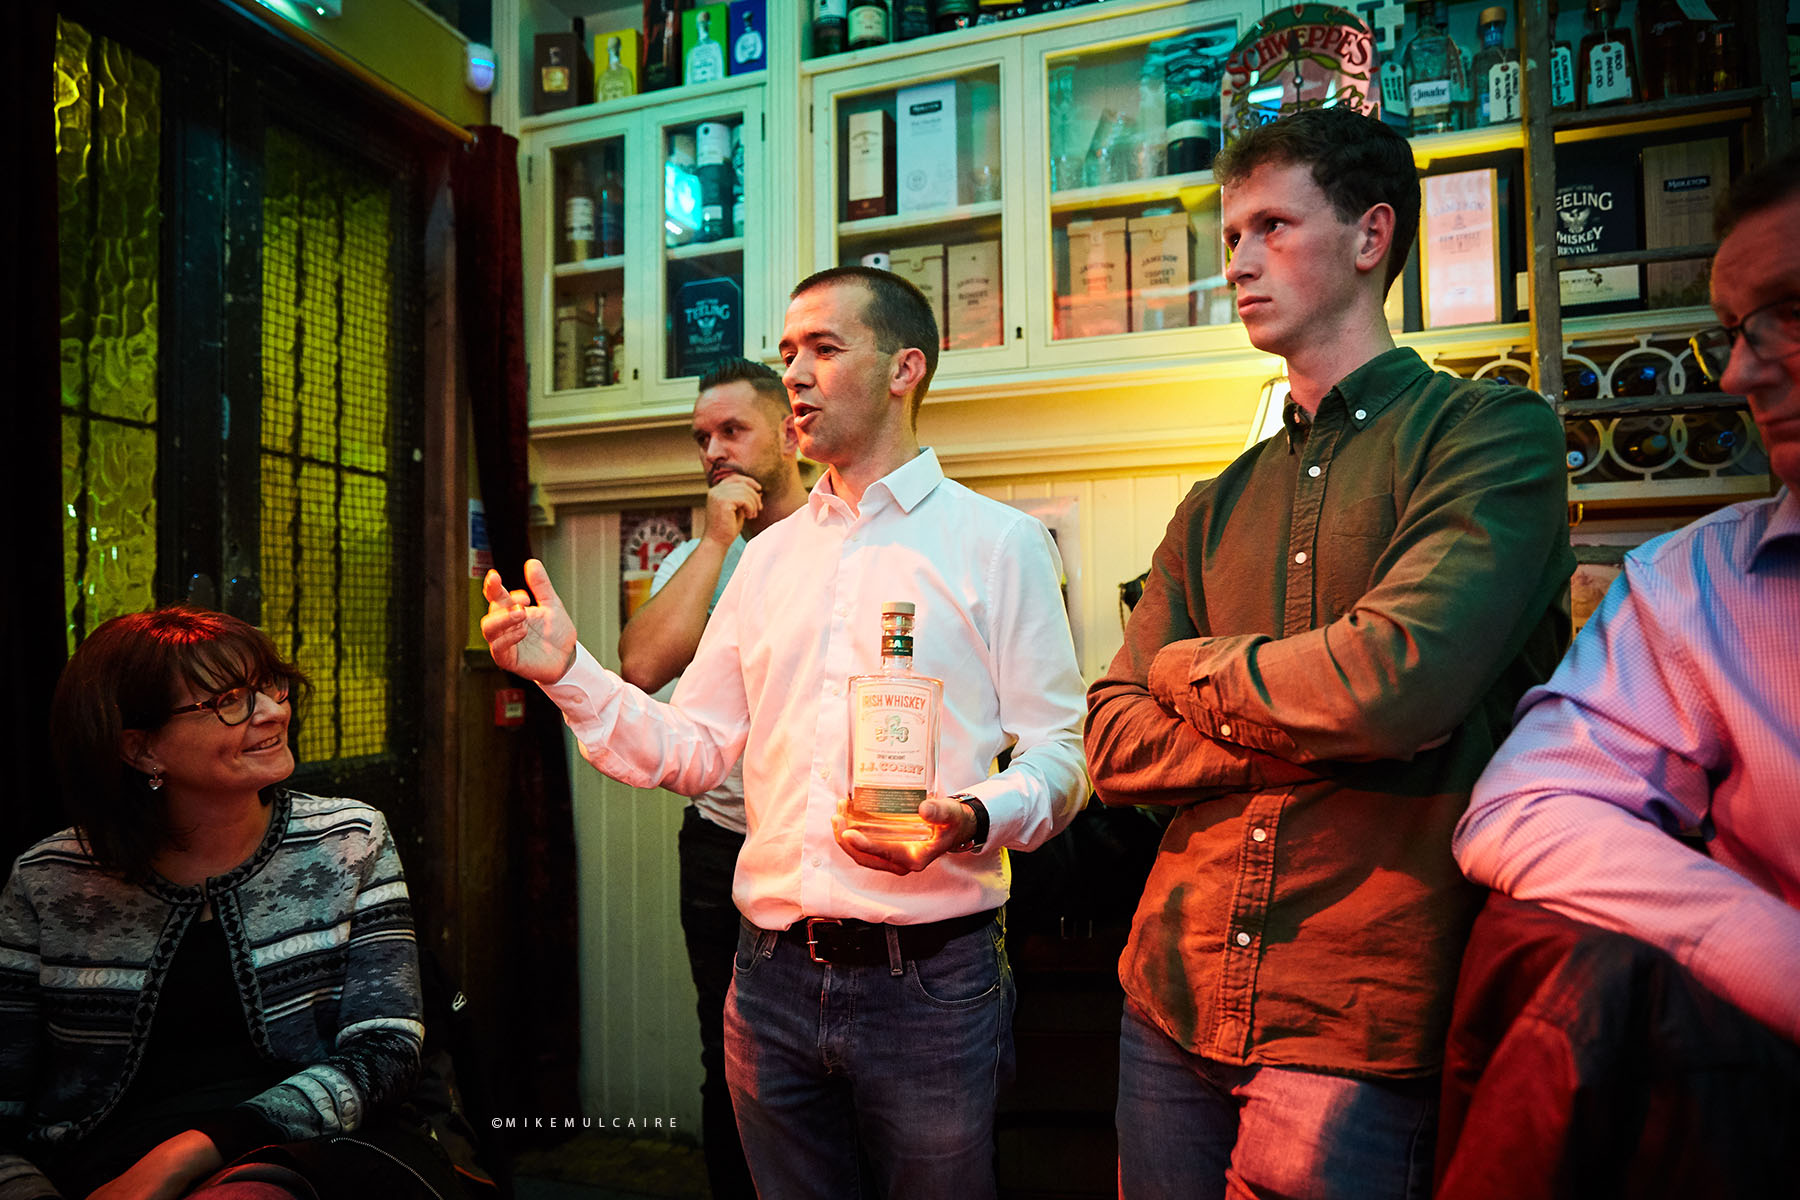 Eric Flynn of the Ennis Whiskey Experience